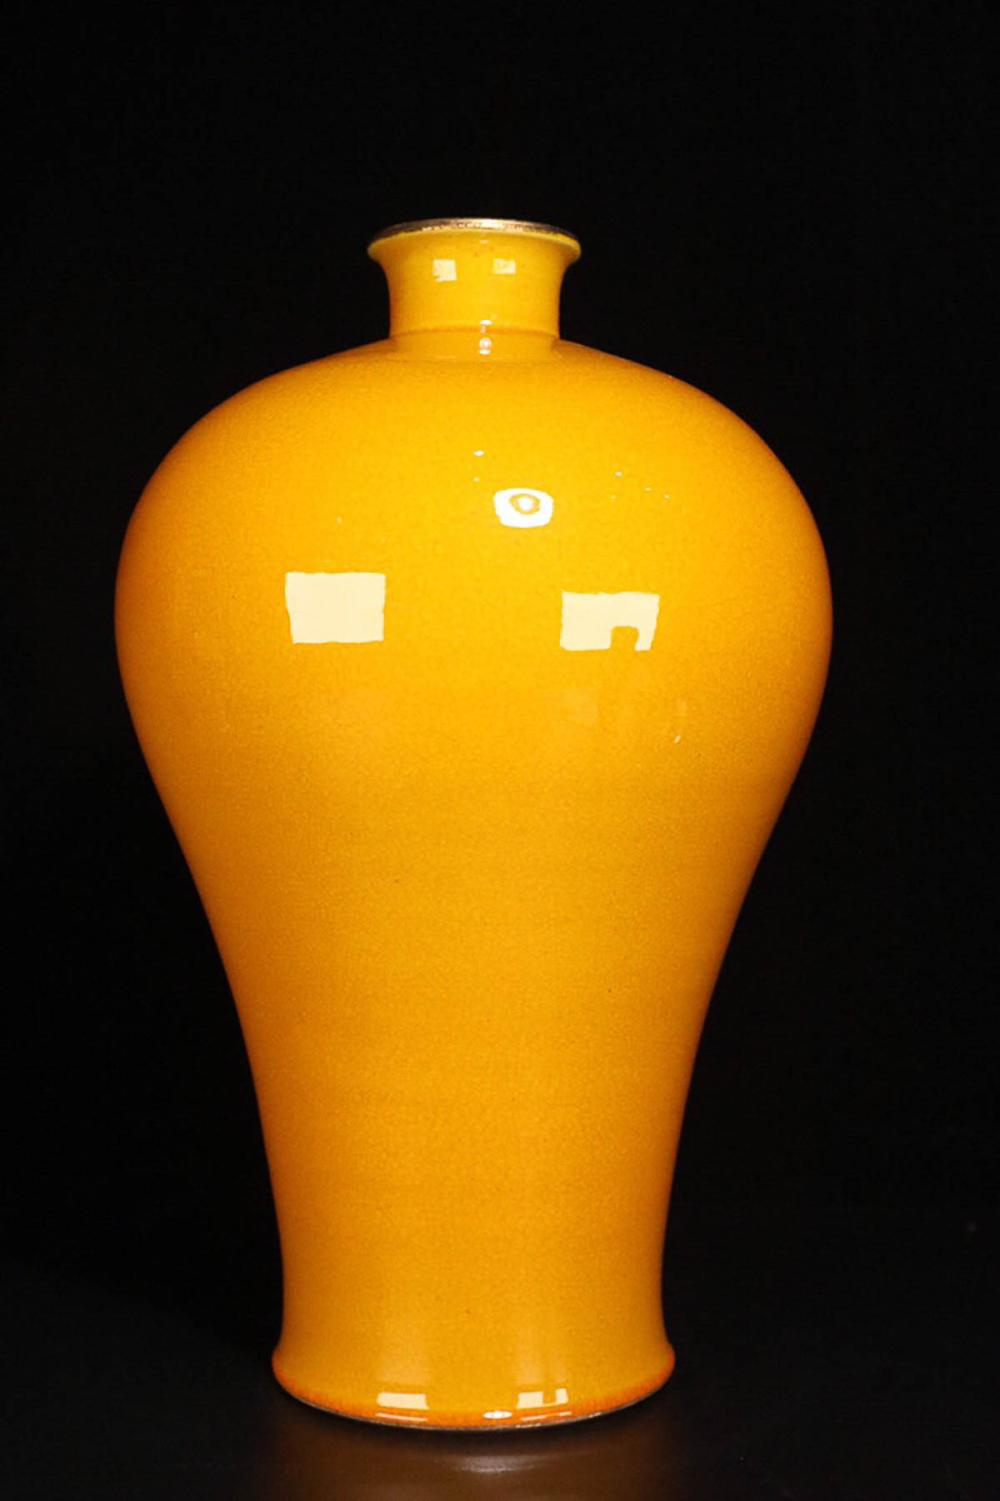 17-19TH CENTURY, A YELLOW GLAZE PLUM VASE, QING DYNASTY